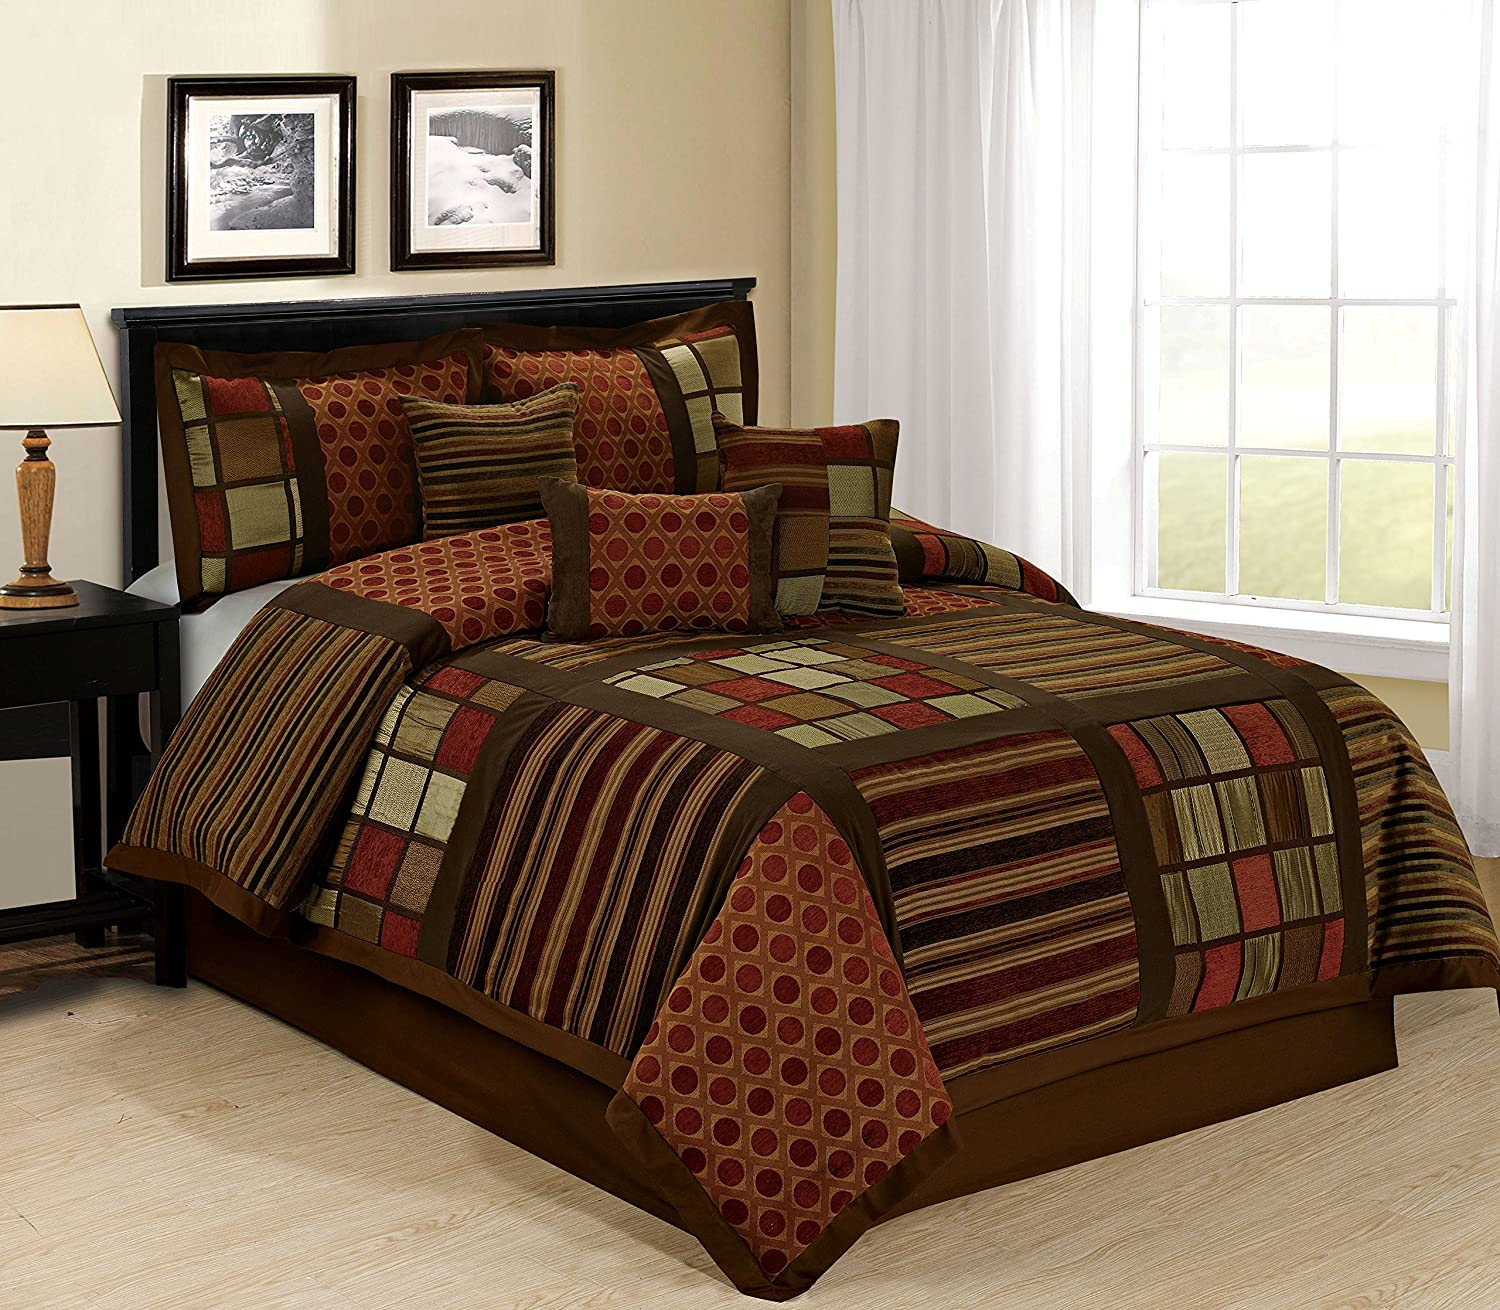 Maroon And Black Bedding Sets Ease Bedding With Style